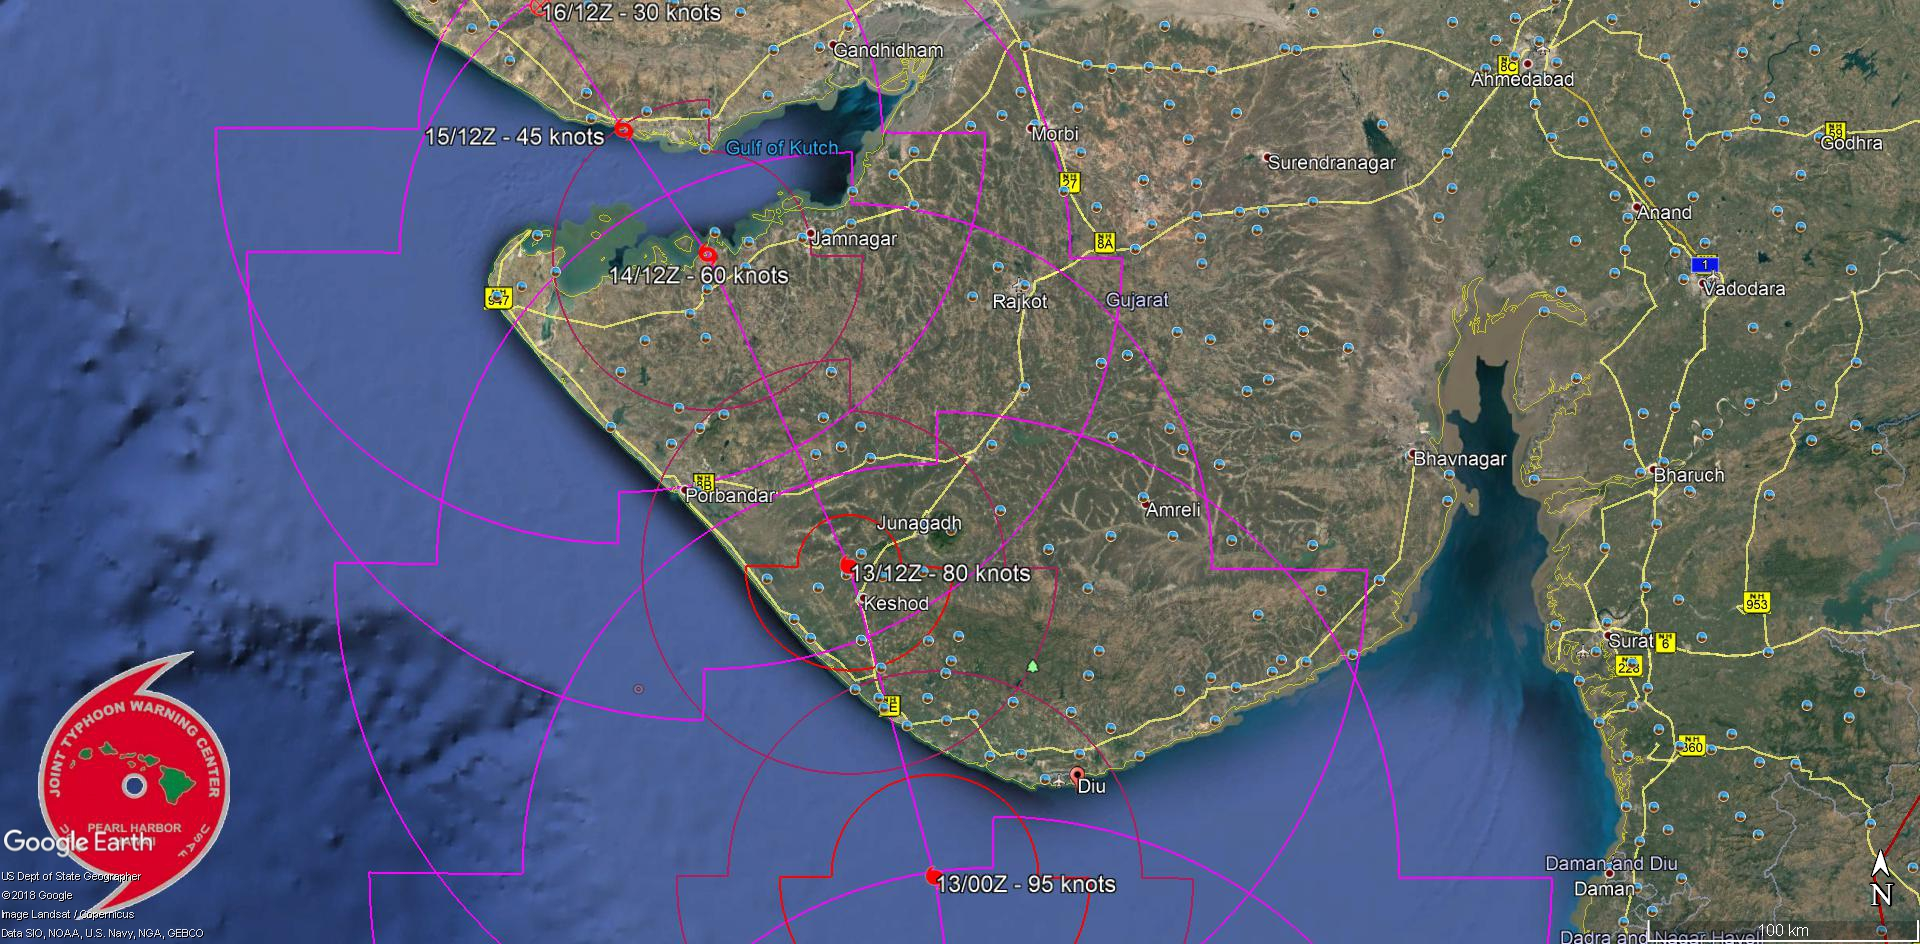 FORECAST LANDFALL AREA BETWEEN DIU AND PORBANDAR SHORTLY AFTER 36H AS A STRONG CATEGORY 2 US